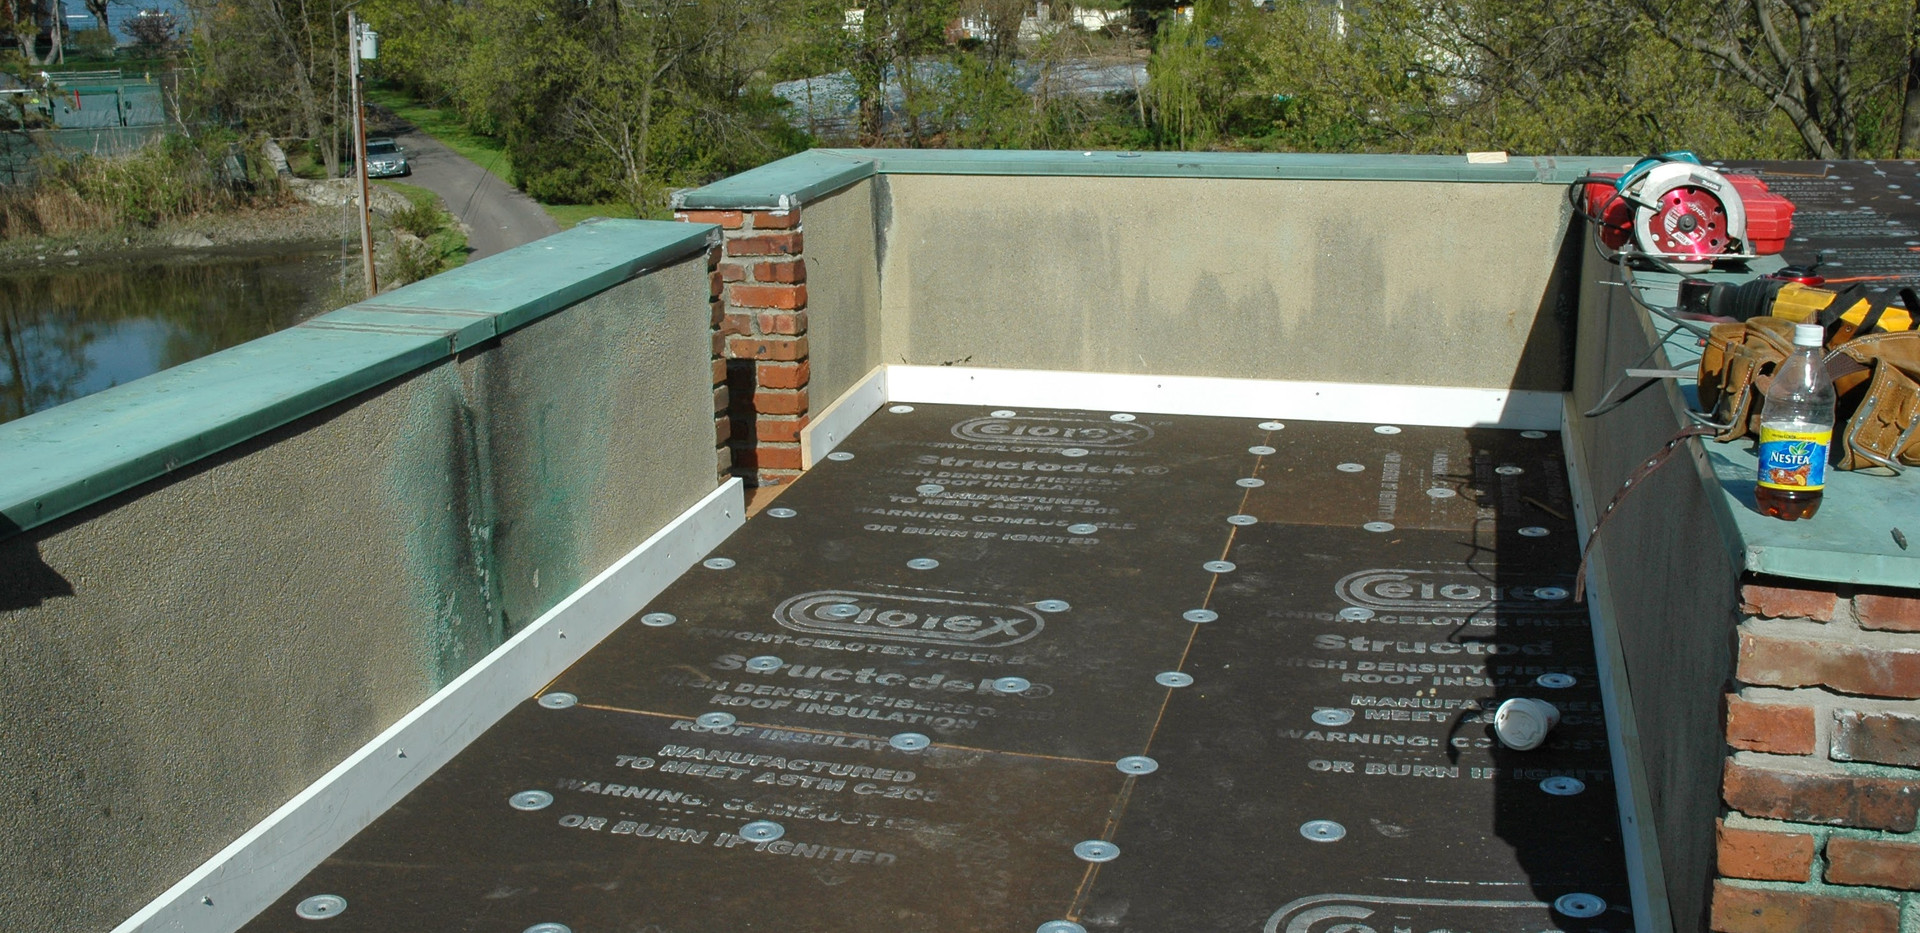 Insulation intsaled to pitch to new darinage system